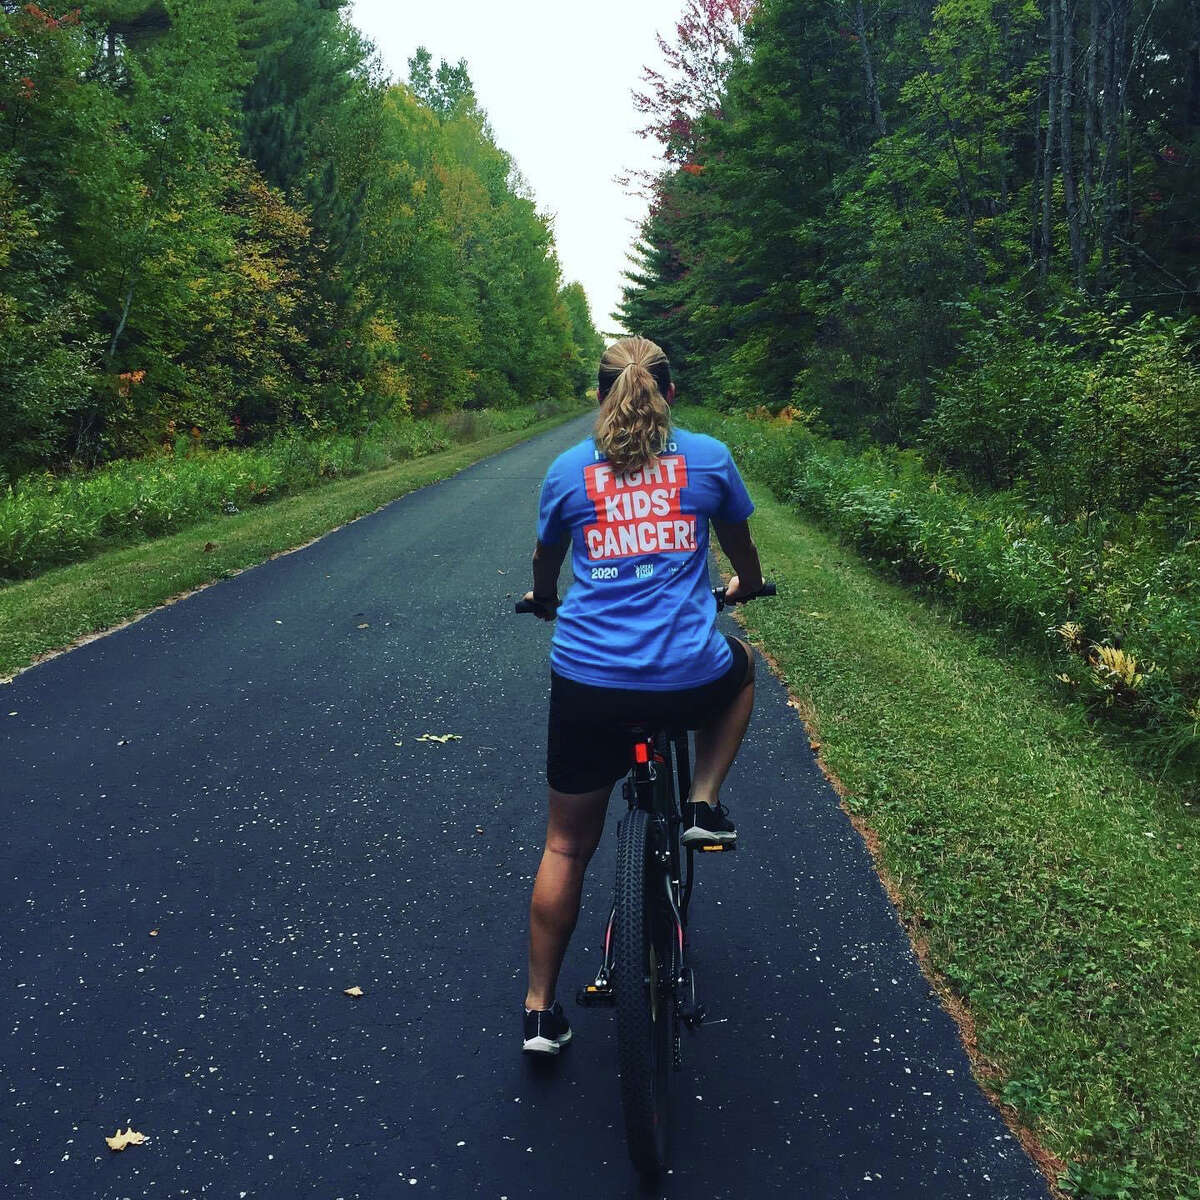 Savannah Wallace prepares to hit the Pere Marquette Rail Trail to raise money for cancer research through the Great Cycle Challenge in this undated photo.